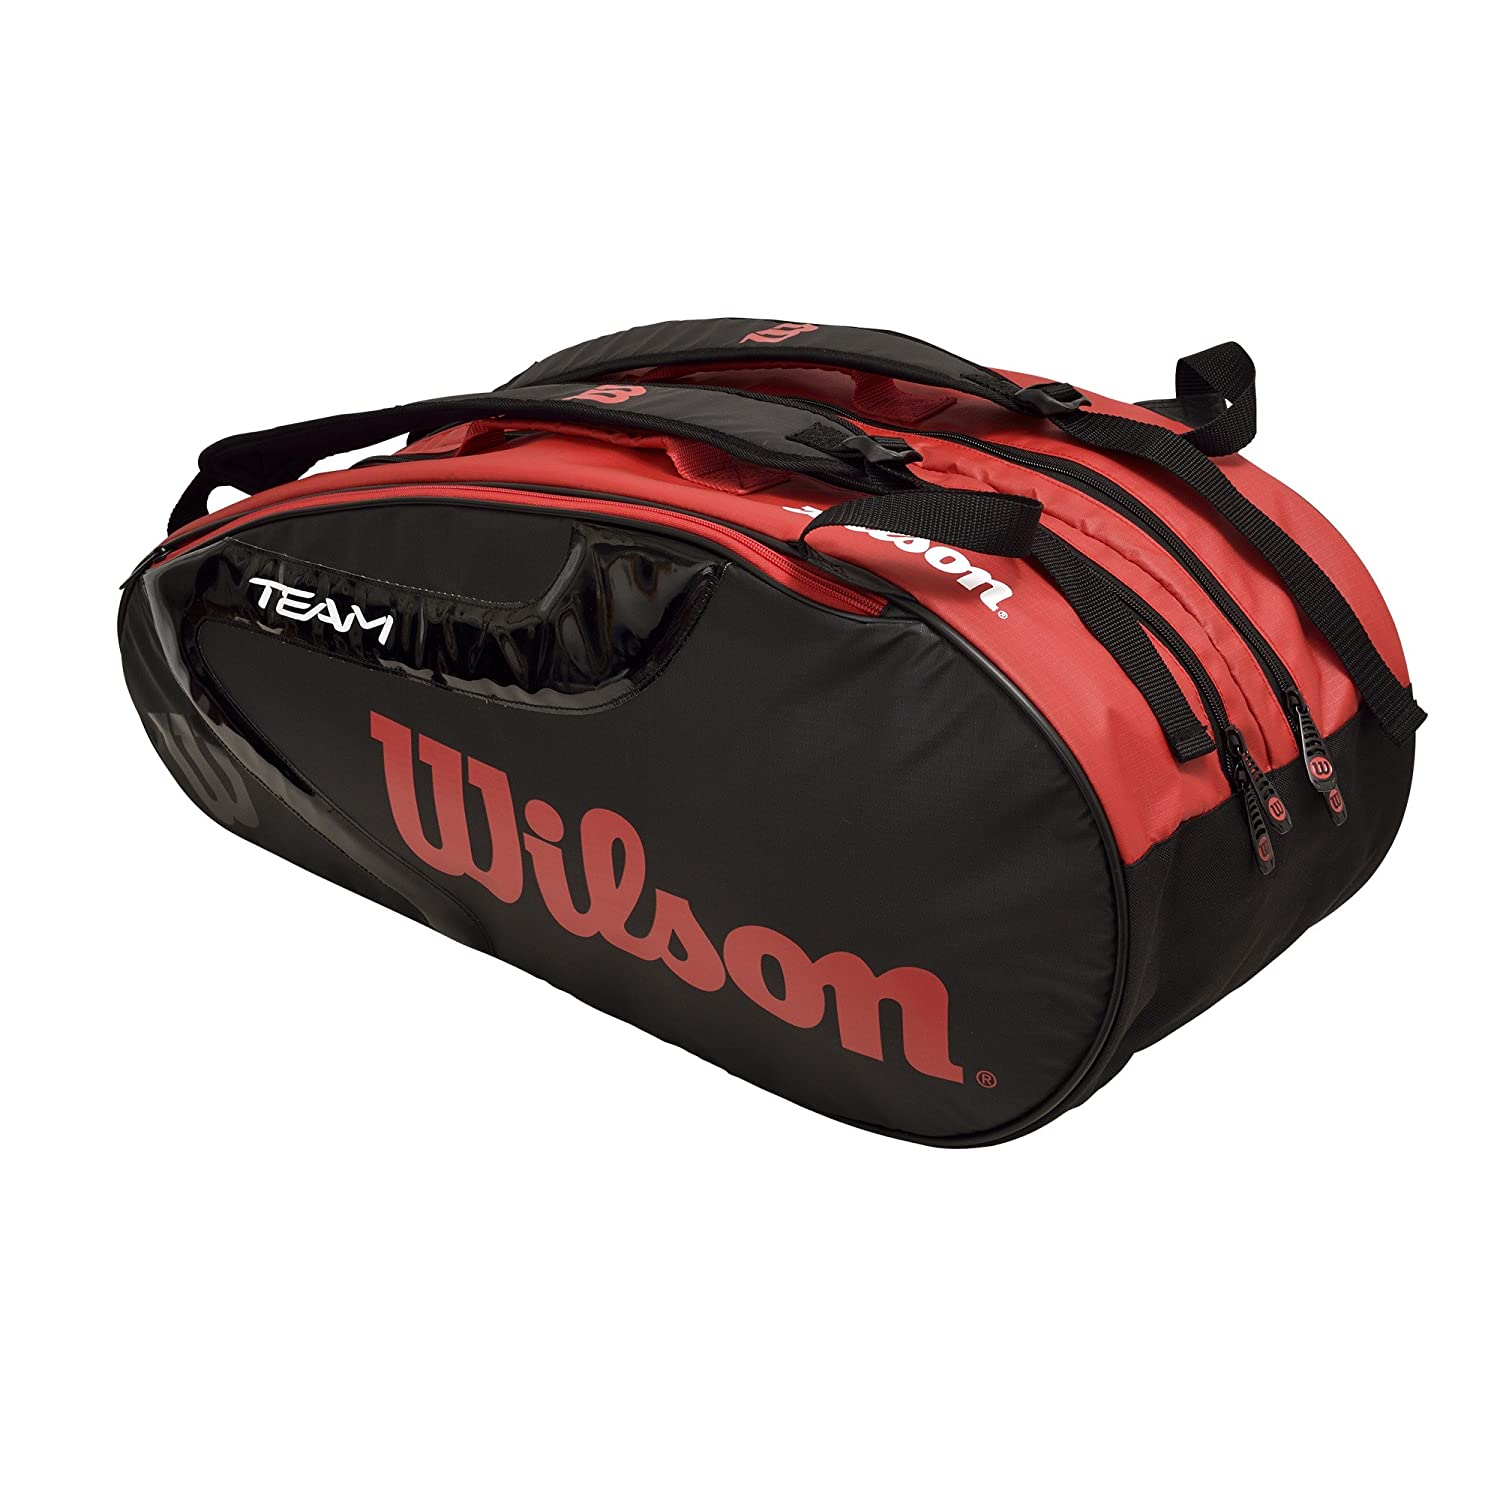 TEAM J 2.0 9PACK RACKET BAG ブラック/レッド